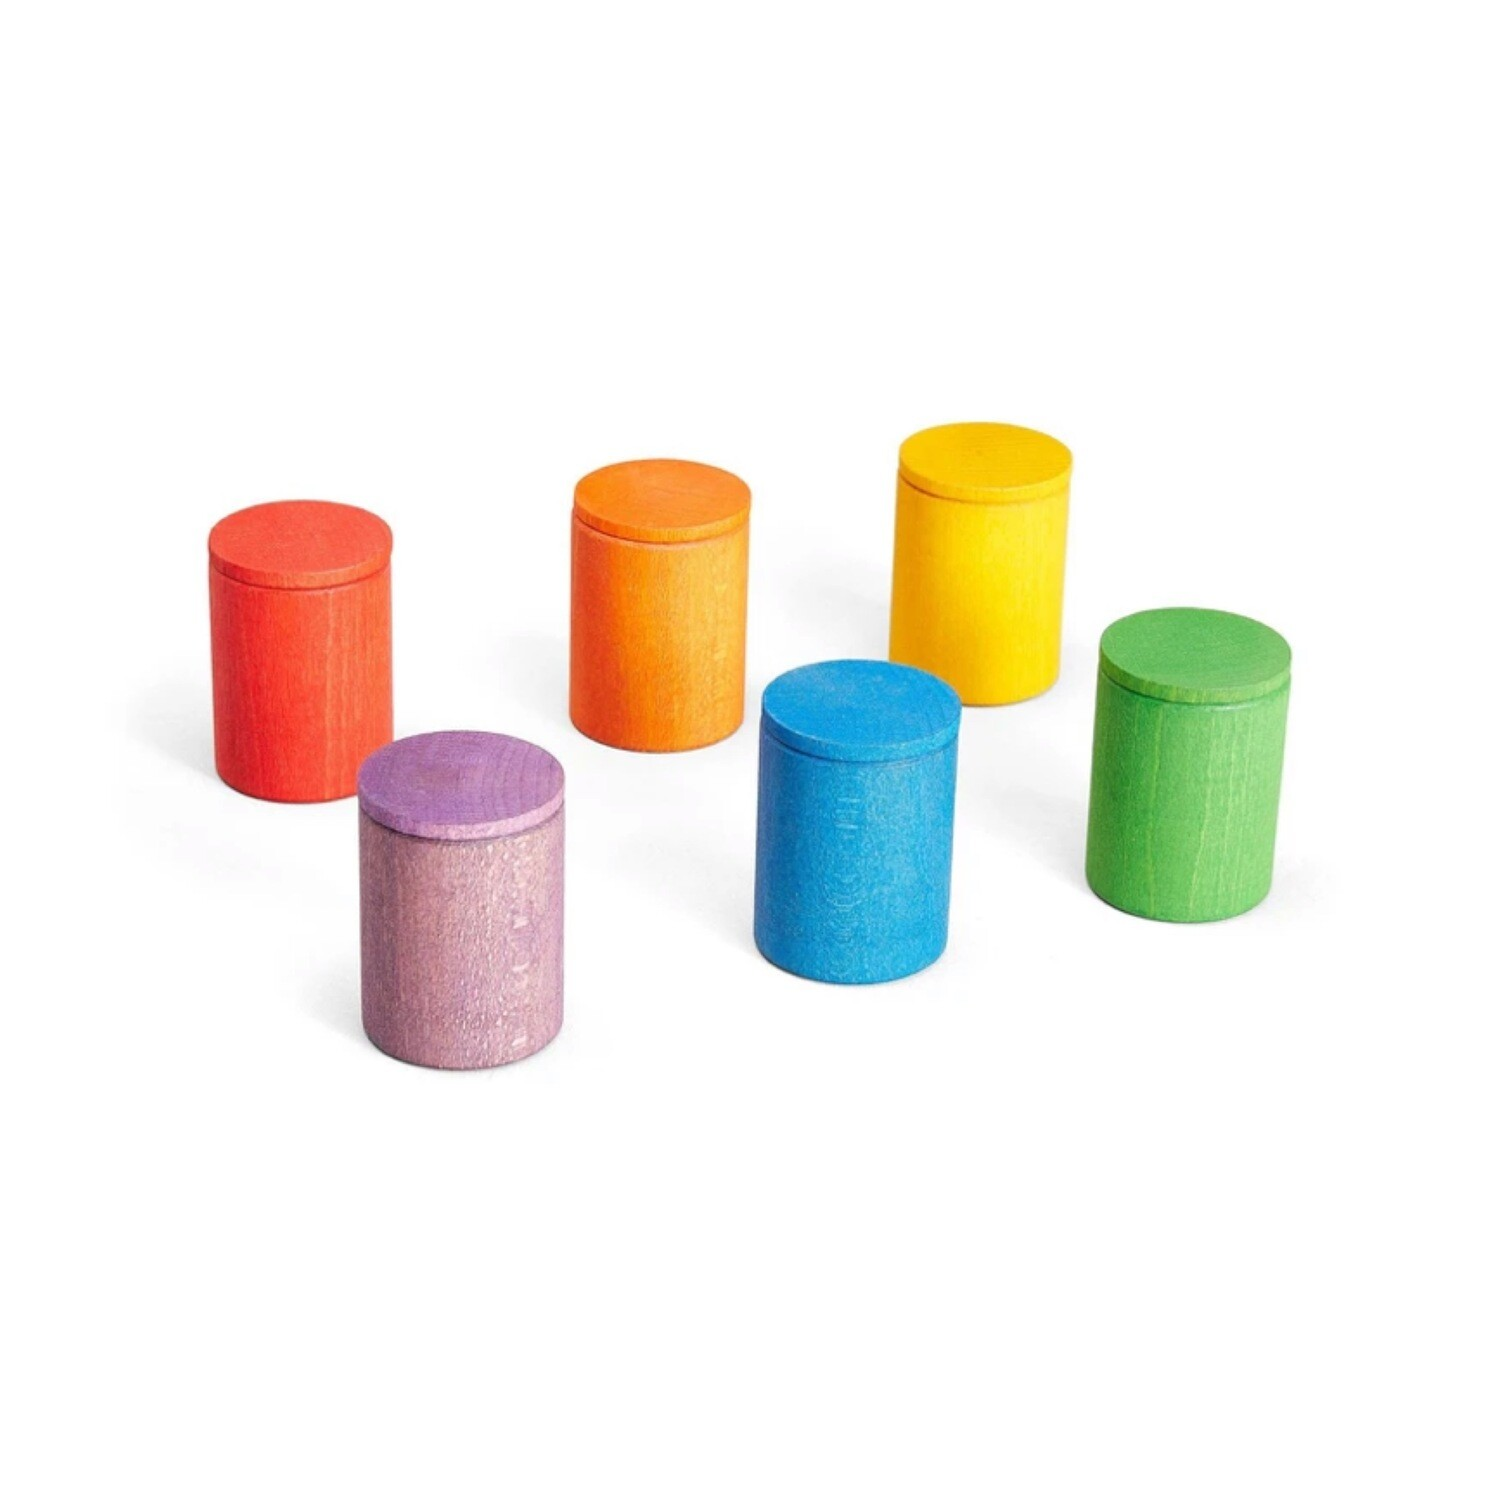 Grapat Colored Wooden Sorting Cups with Lids